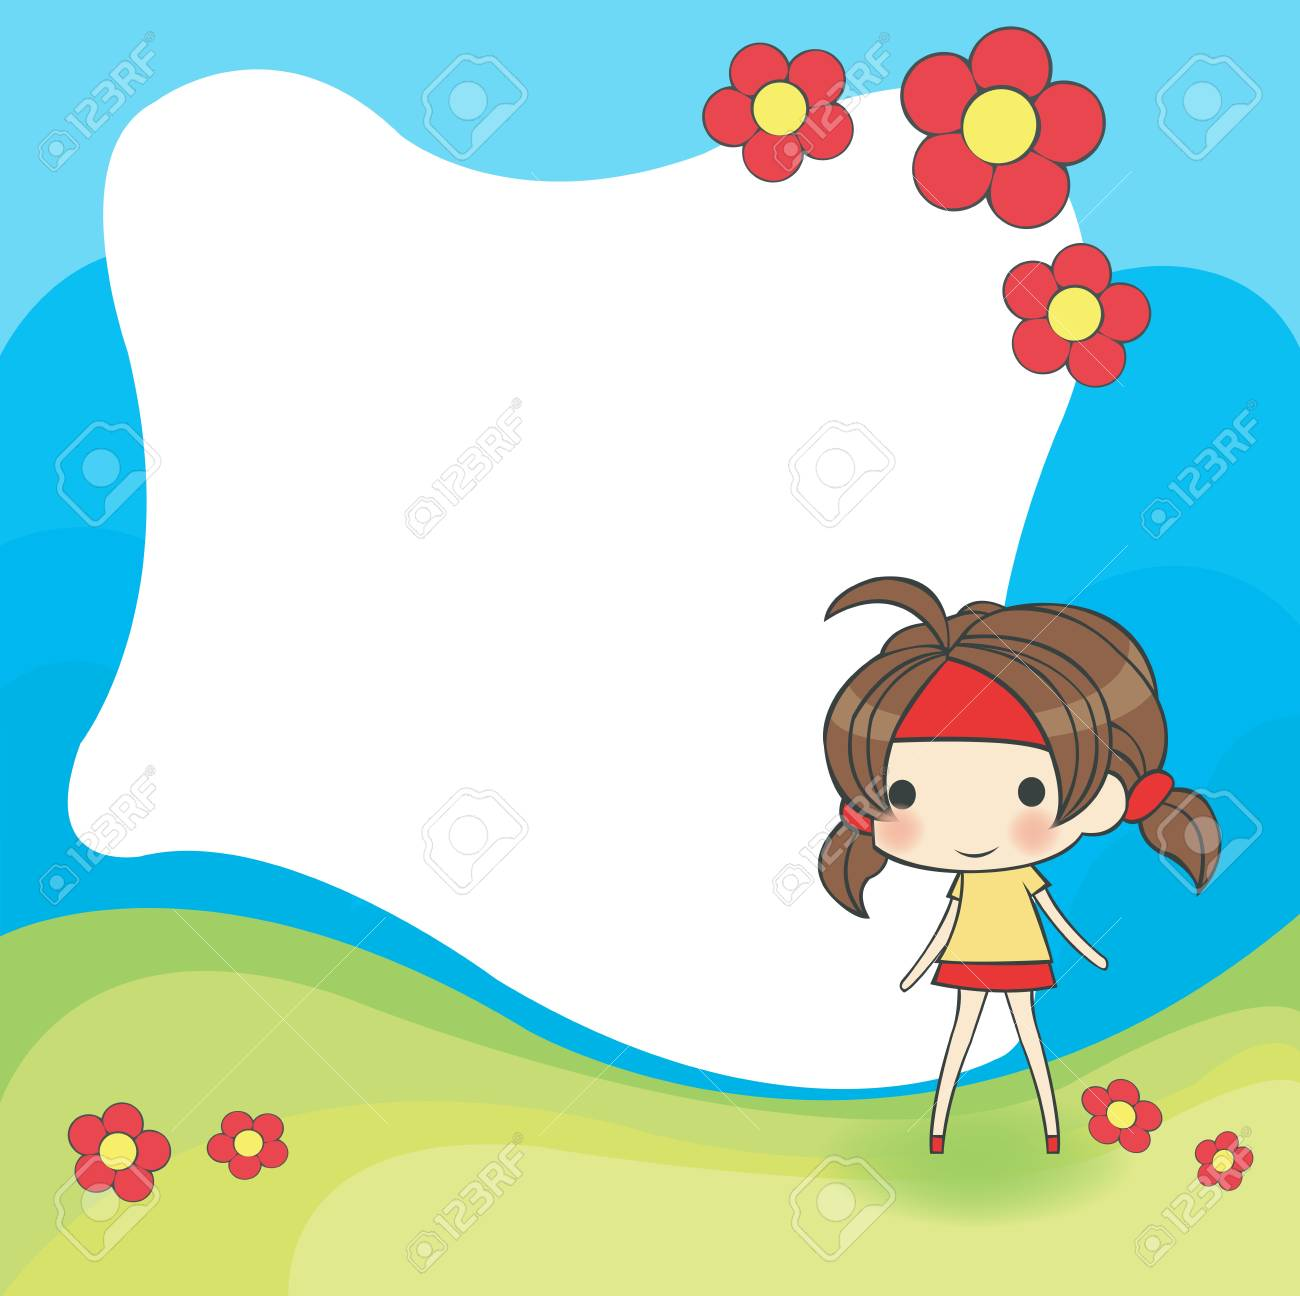 cute cartoon frame Stock Vector - 19561049